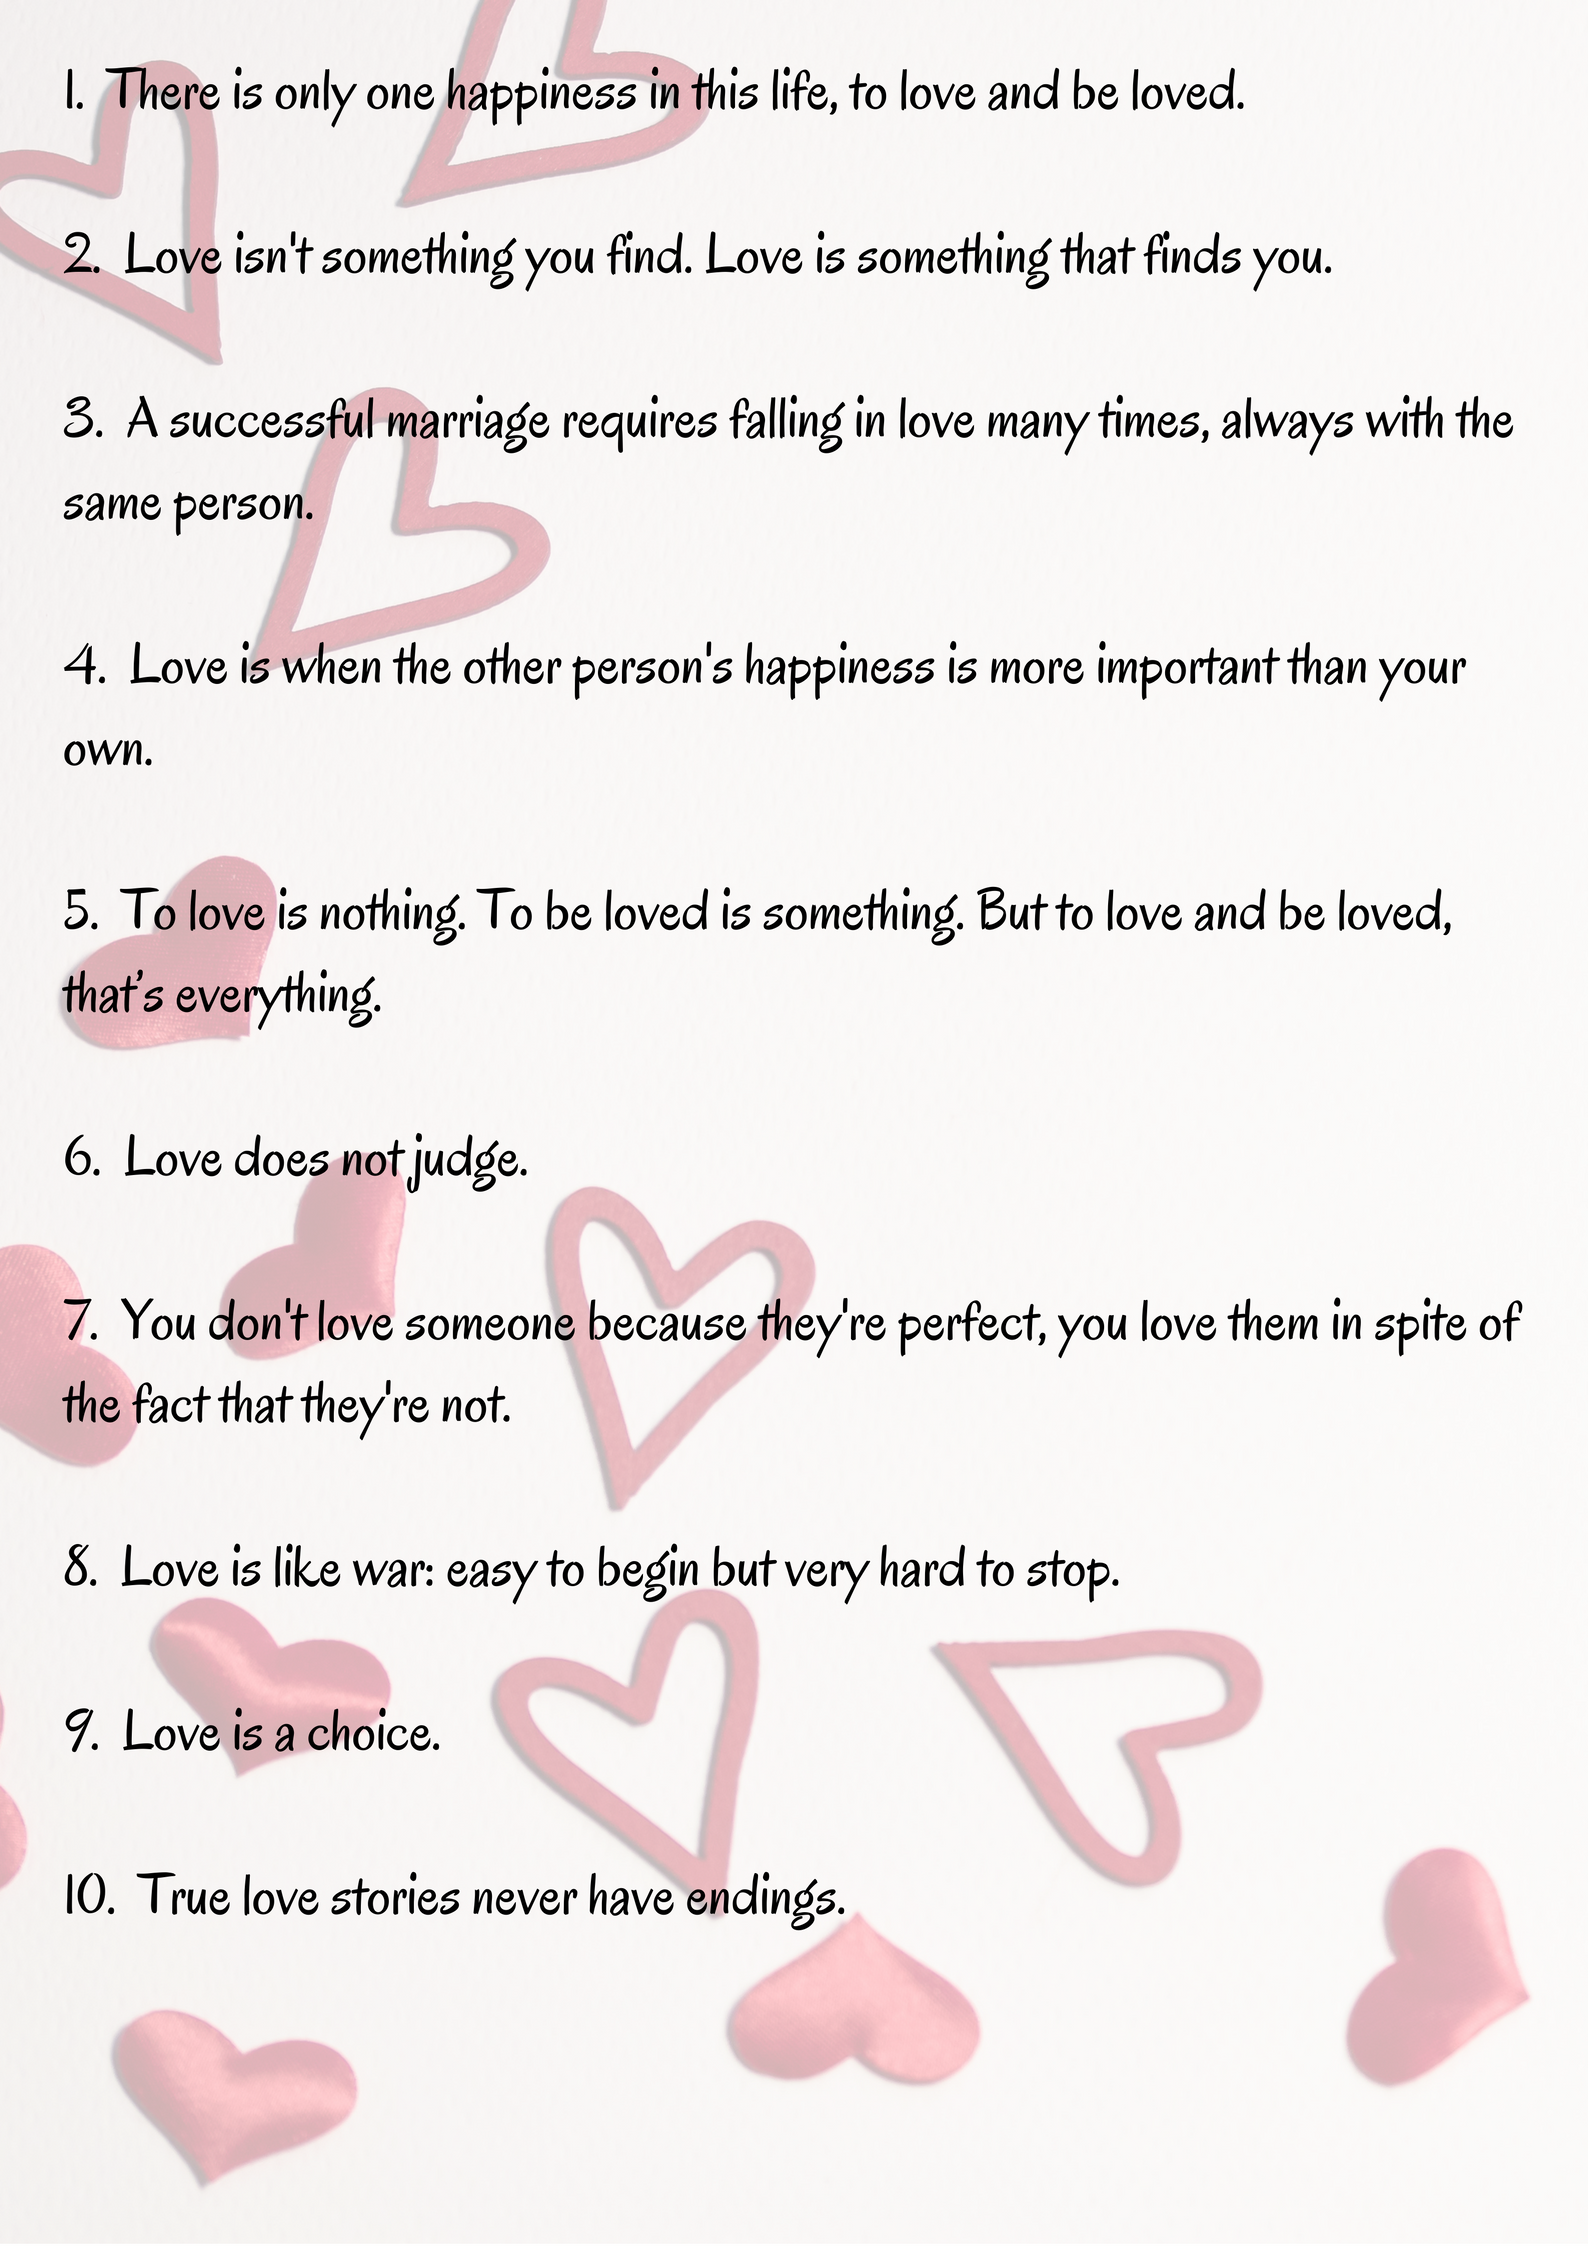 1. There is only one happiness in this life, to love and be loved.